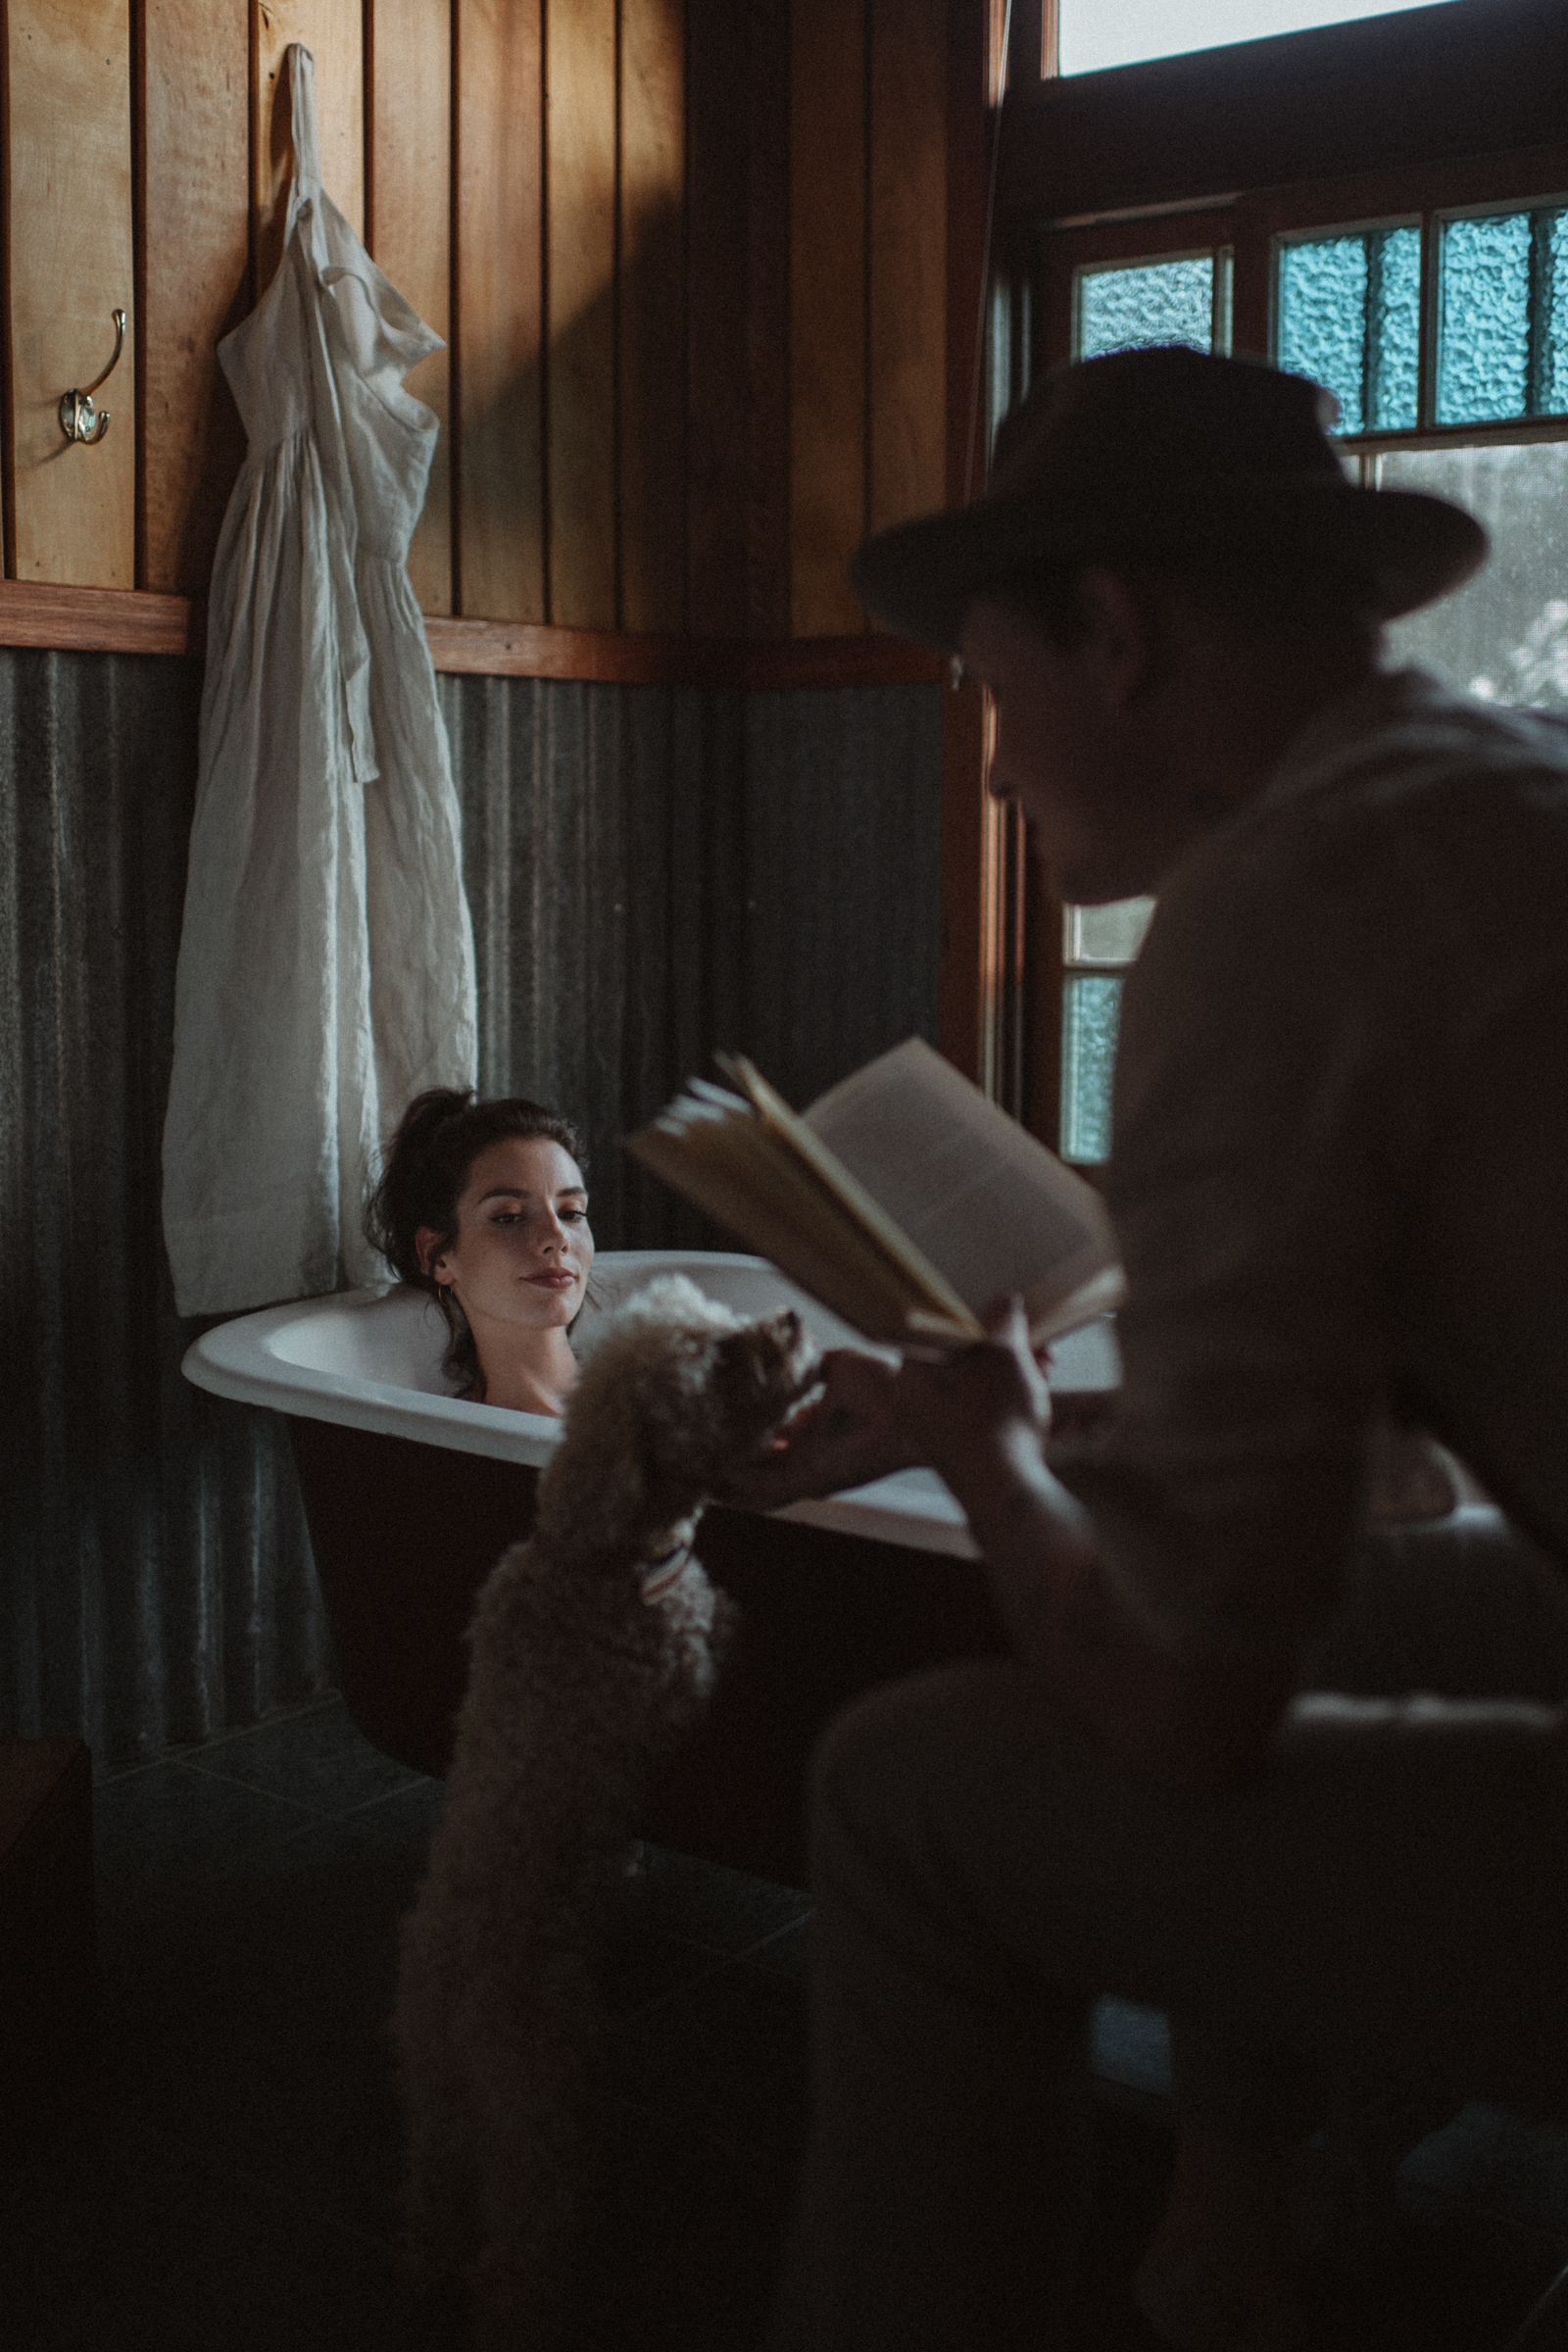 Groom reads to bride in bath - photo by Ben Sowry Photo